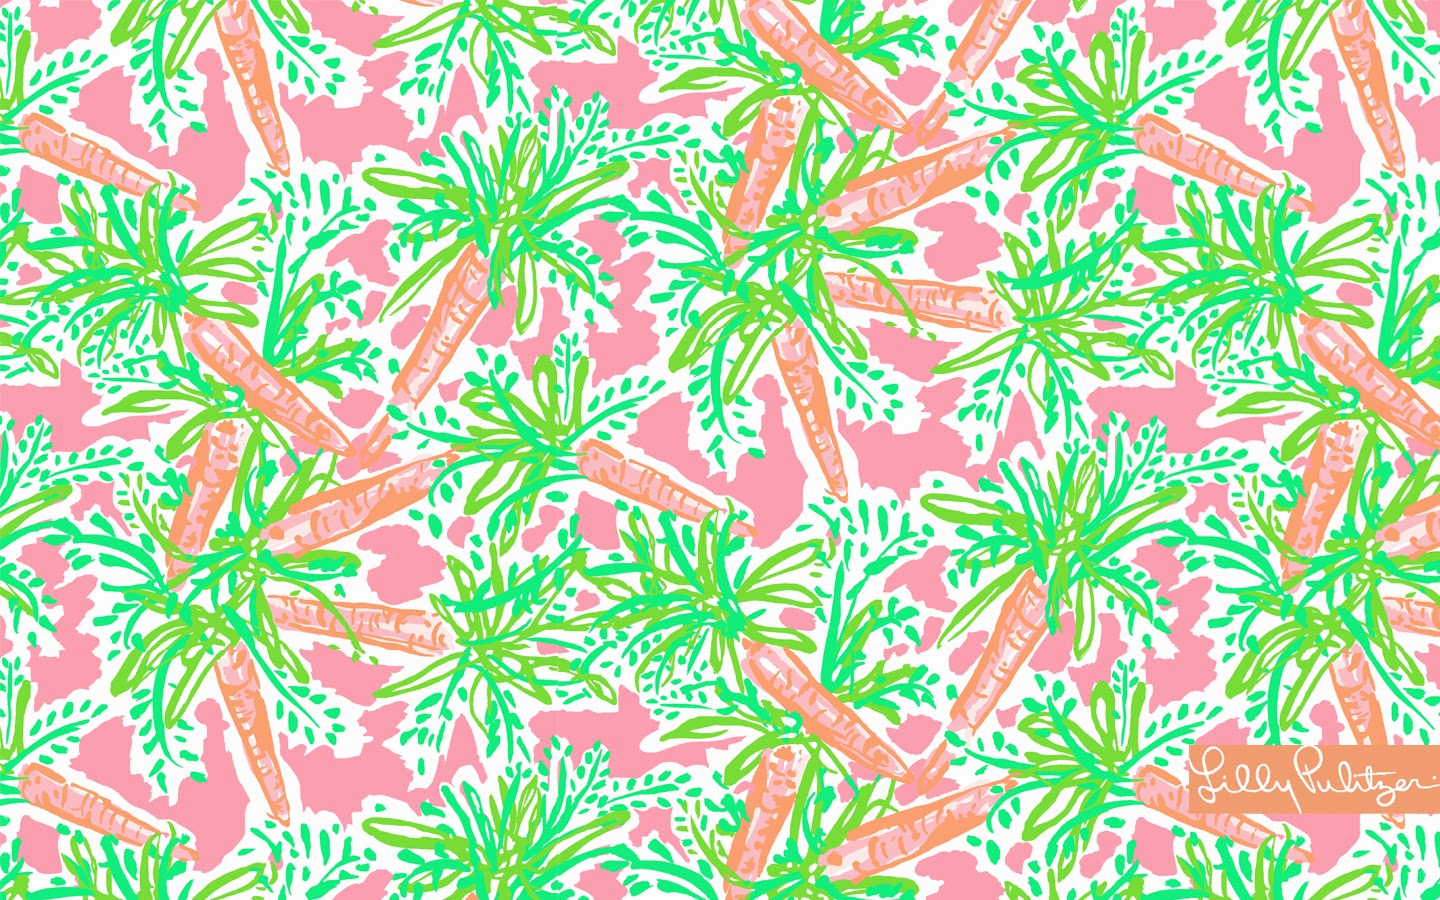 preppy backgrounds for iphone - HD1440×900